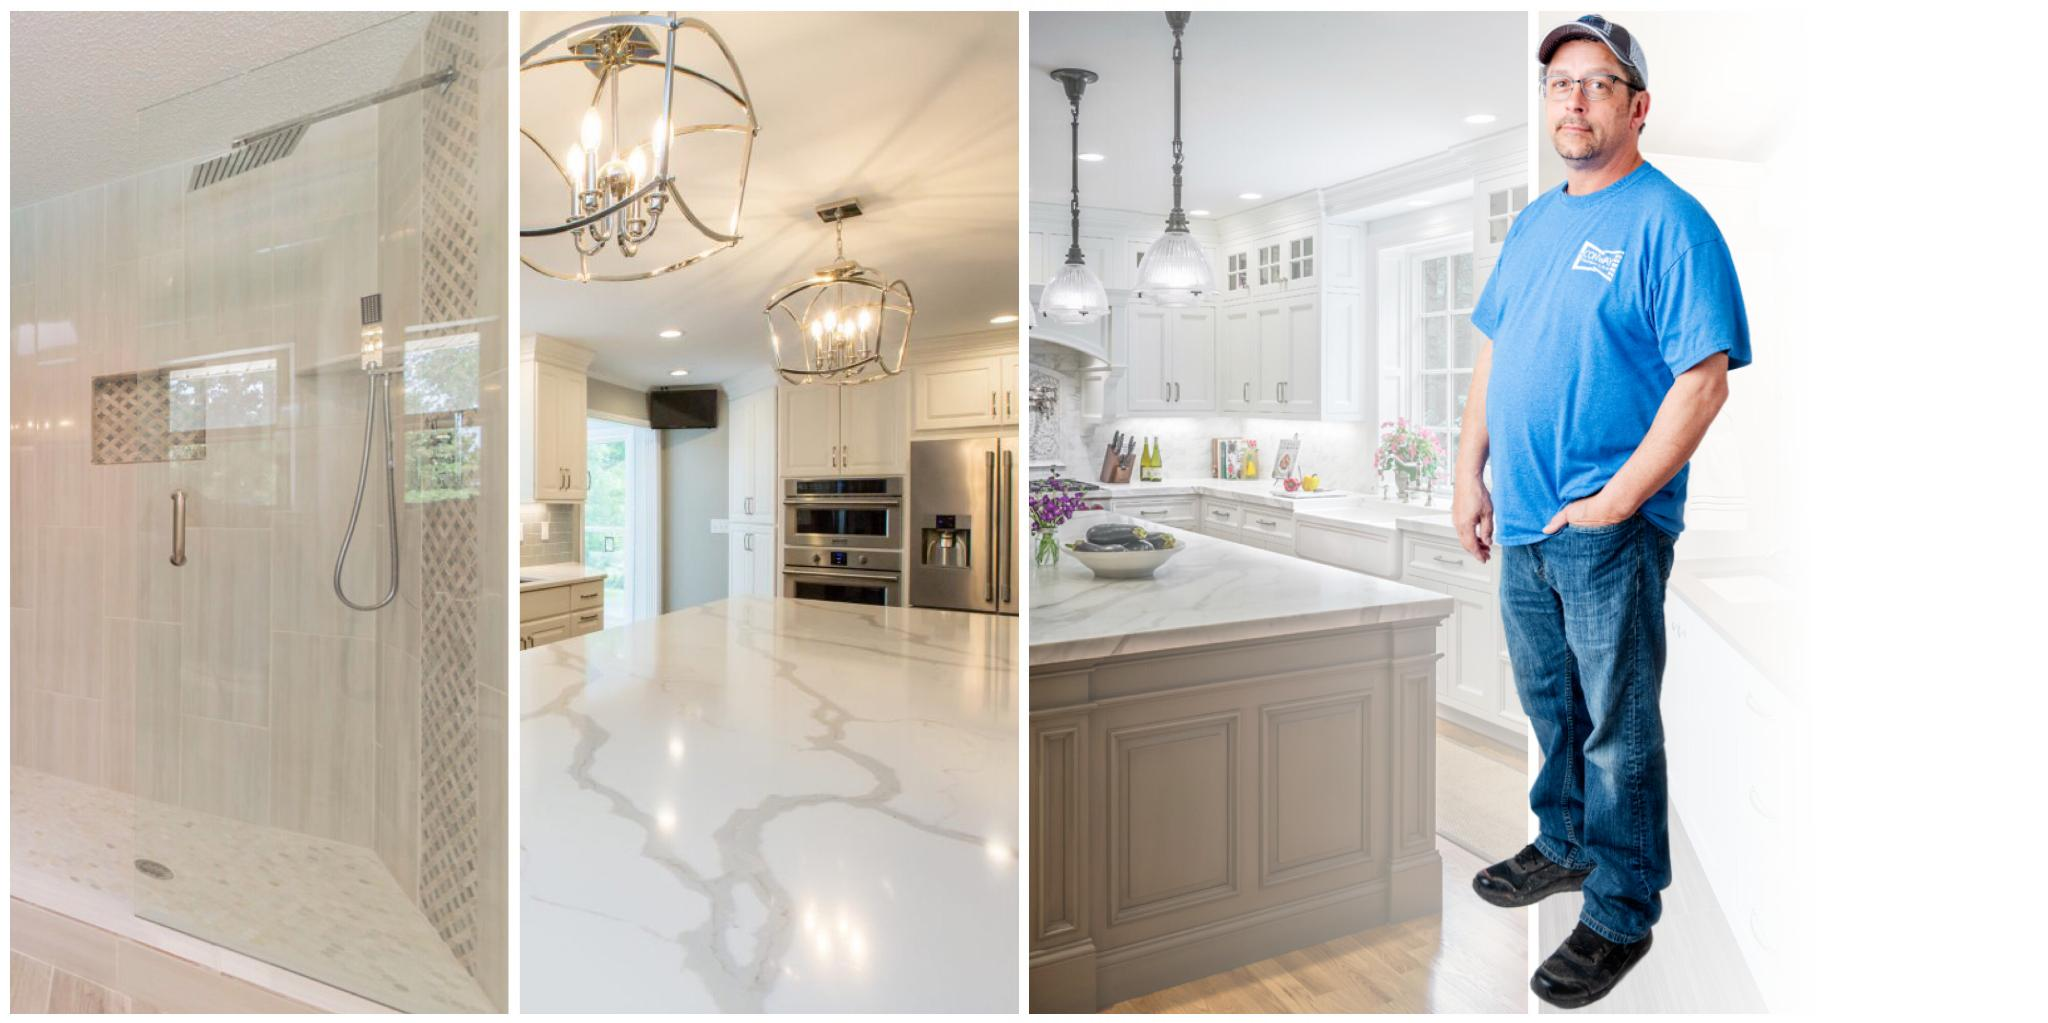 Owner Johnny Miller standing with three images. One is a bathroom, another is a living room, and the other is a kitchen.